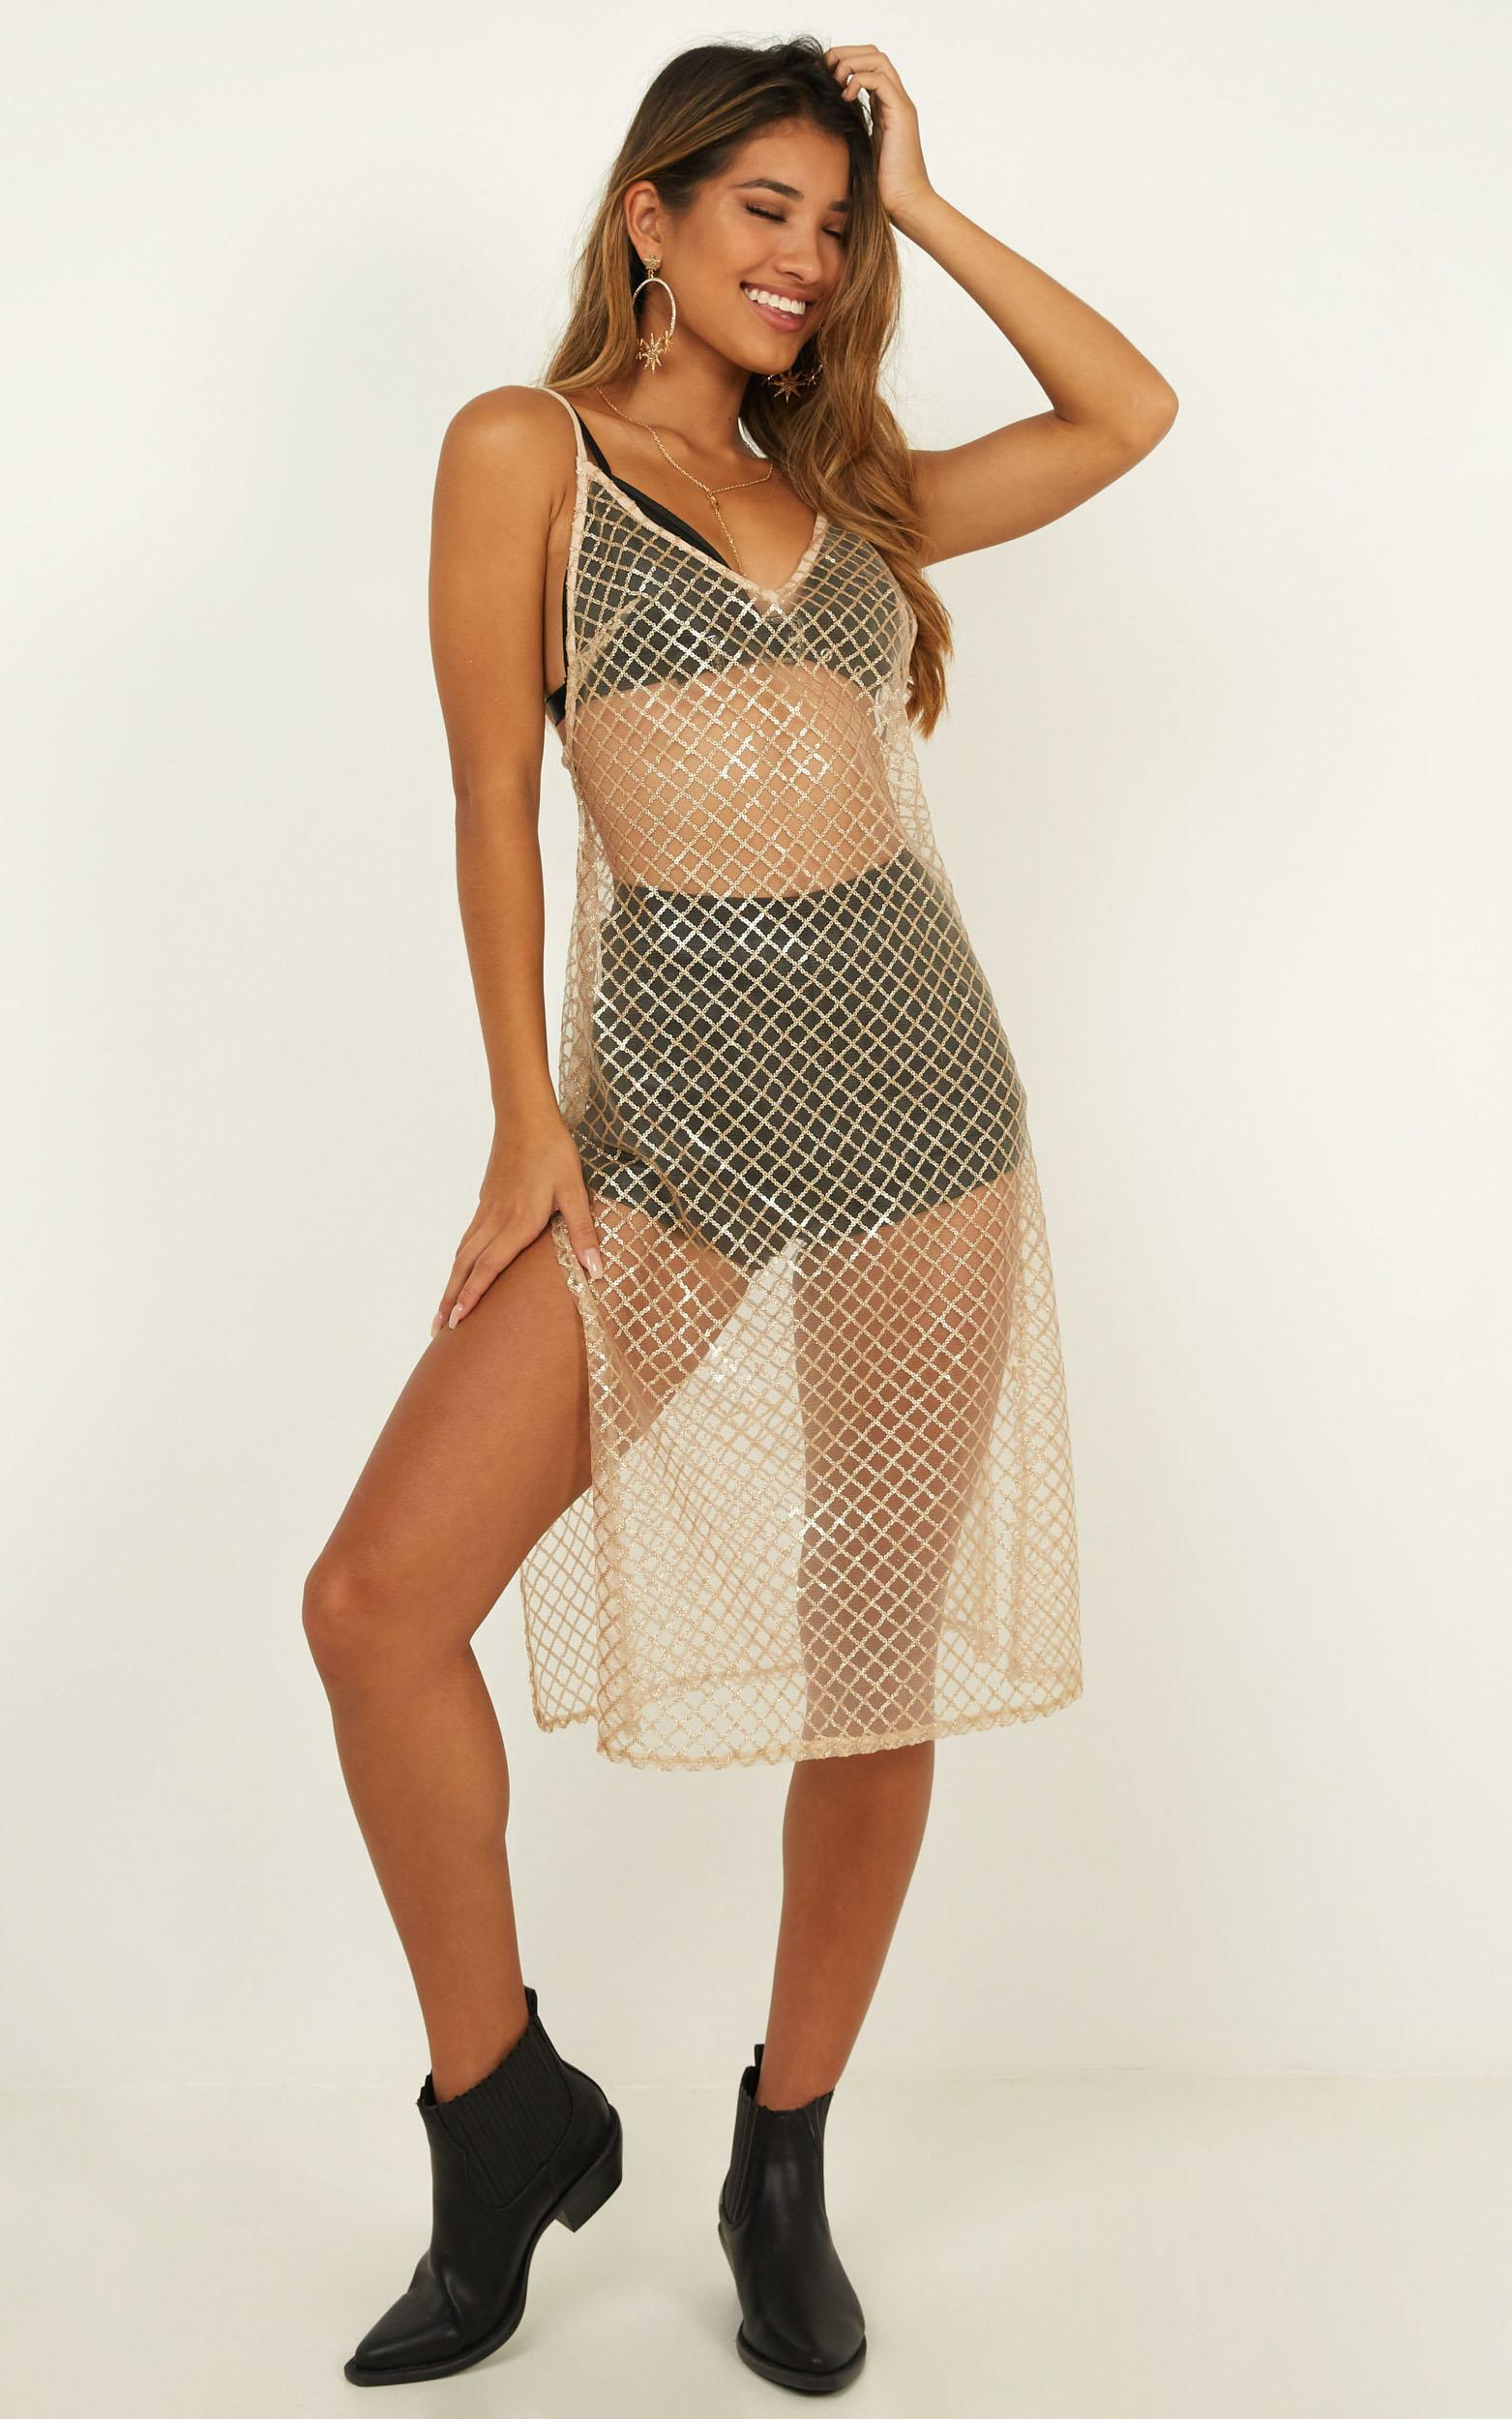 No Relief Dress In champage sequin mesh - 16 (XXL), Blush, hi-res image number null